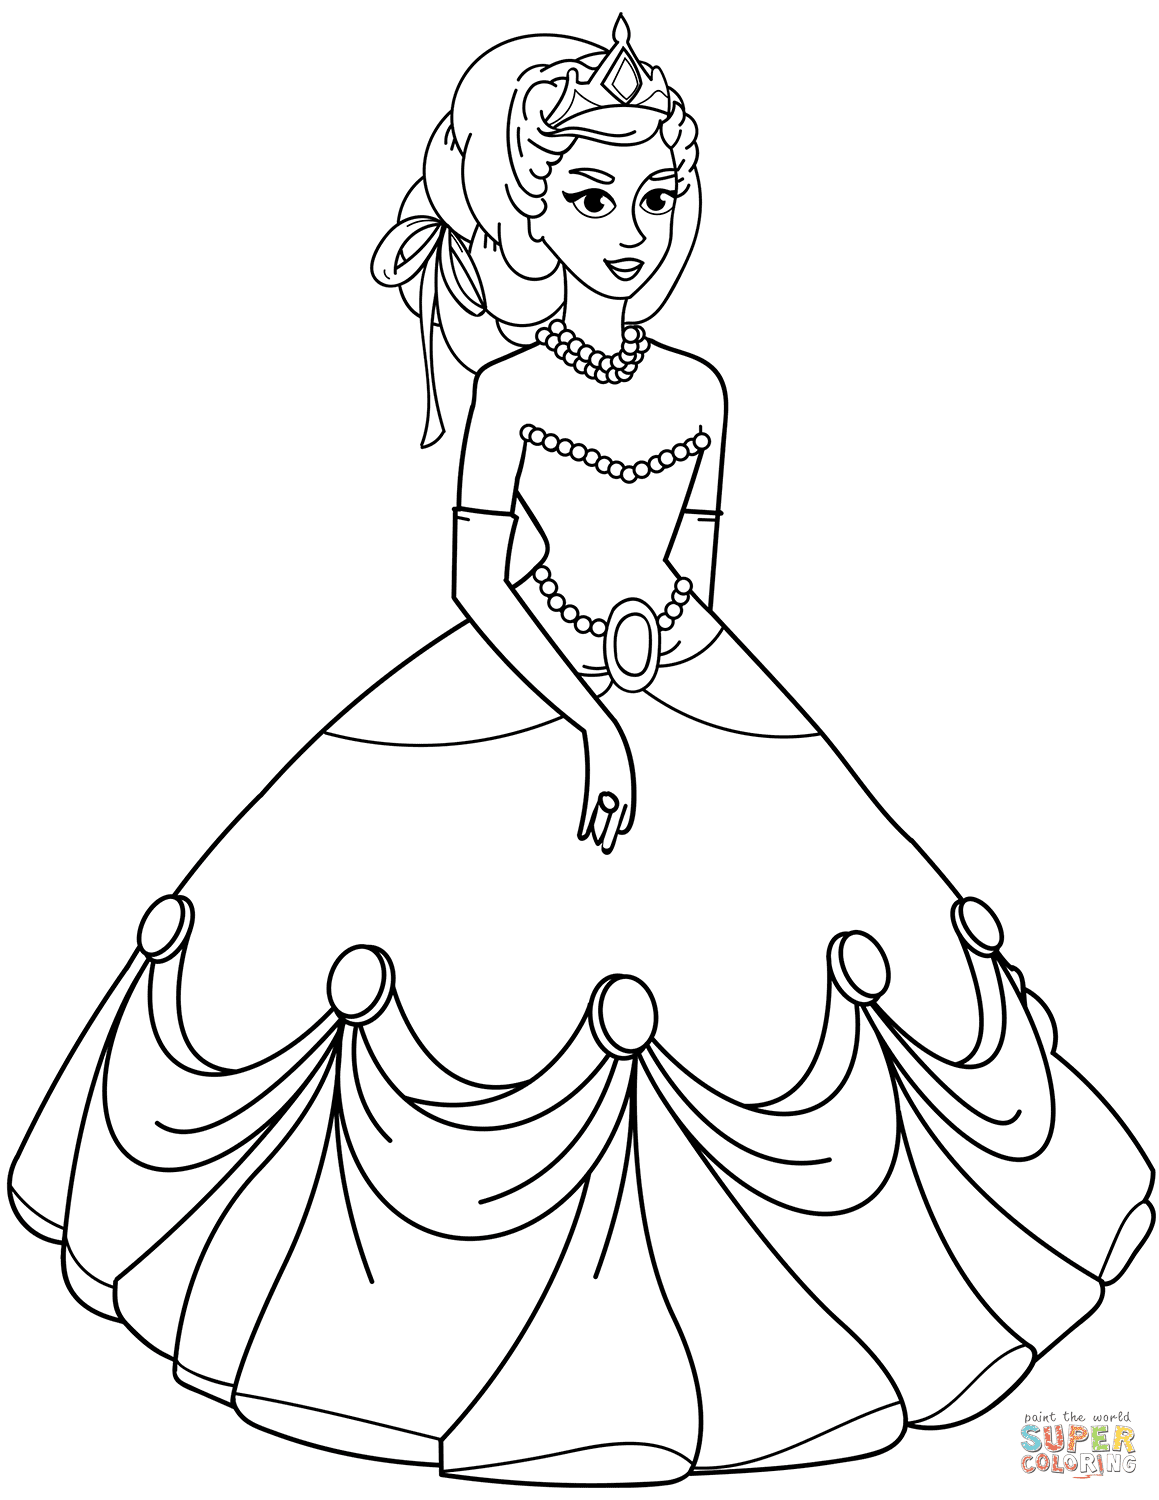 Princess in Ball Gown Dress coloring page | Free Printable ...